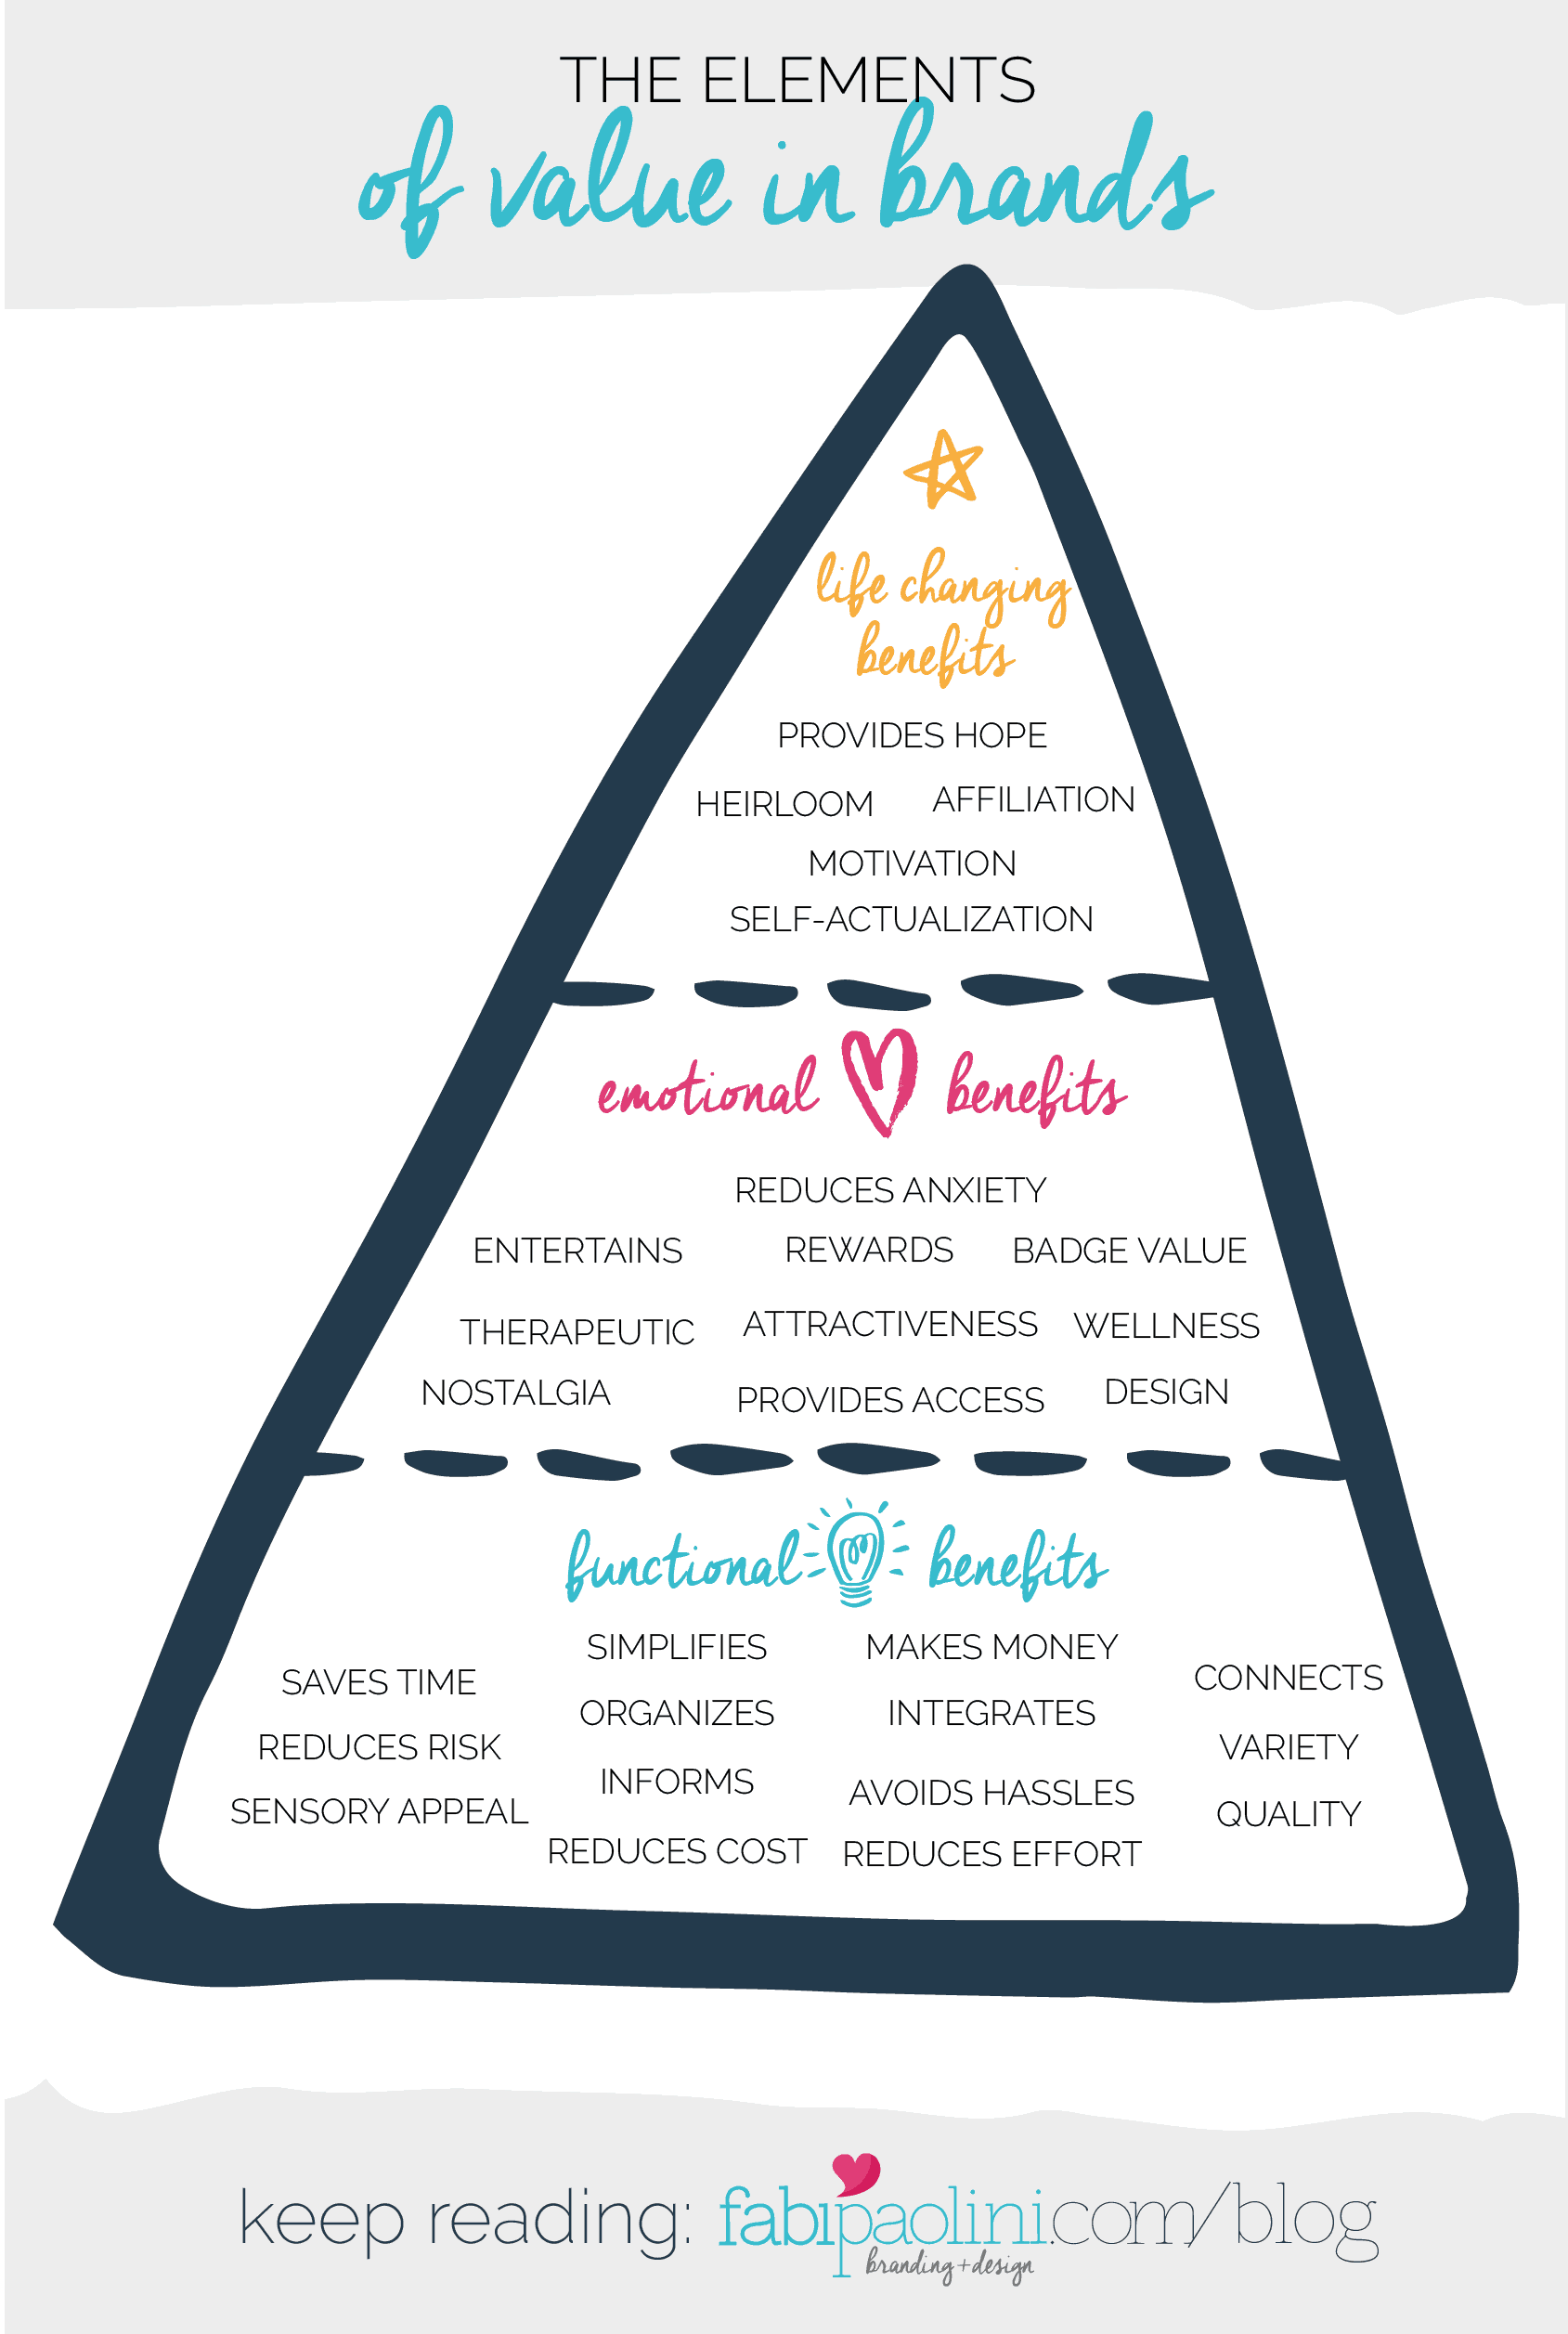 What your audience really wants. The elements of value. Brand Pyramid. Branding. Fabi Paolini . Functional, emotional and Life changing benefits